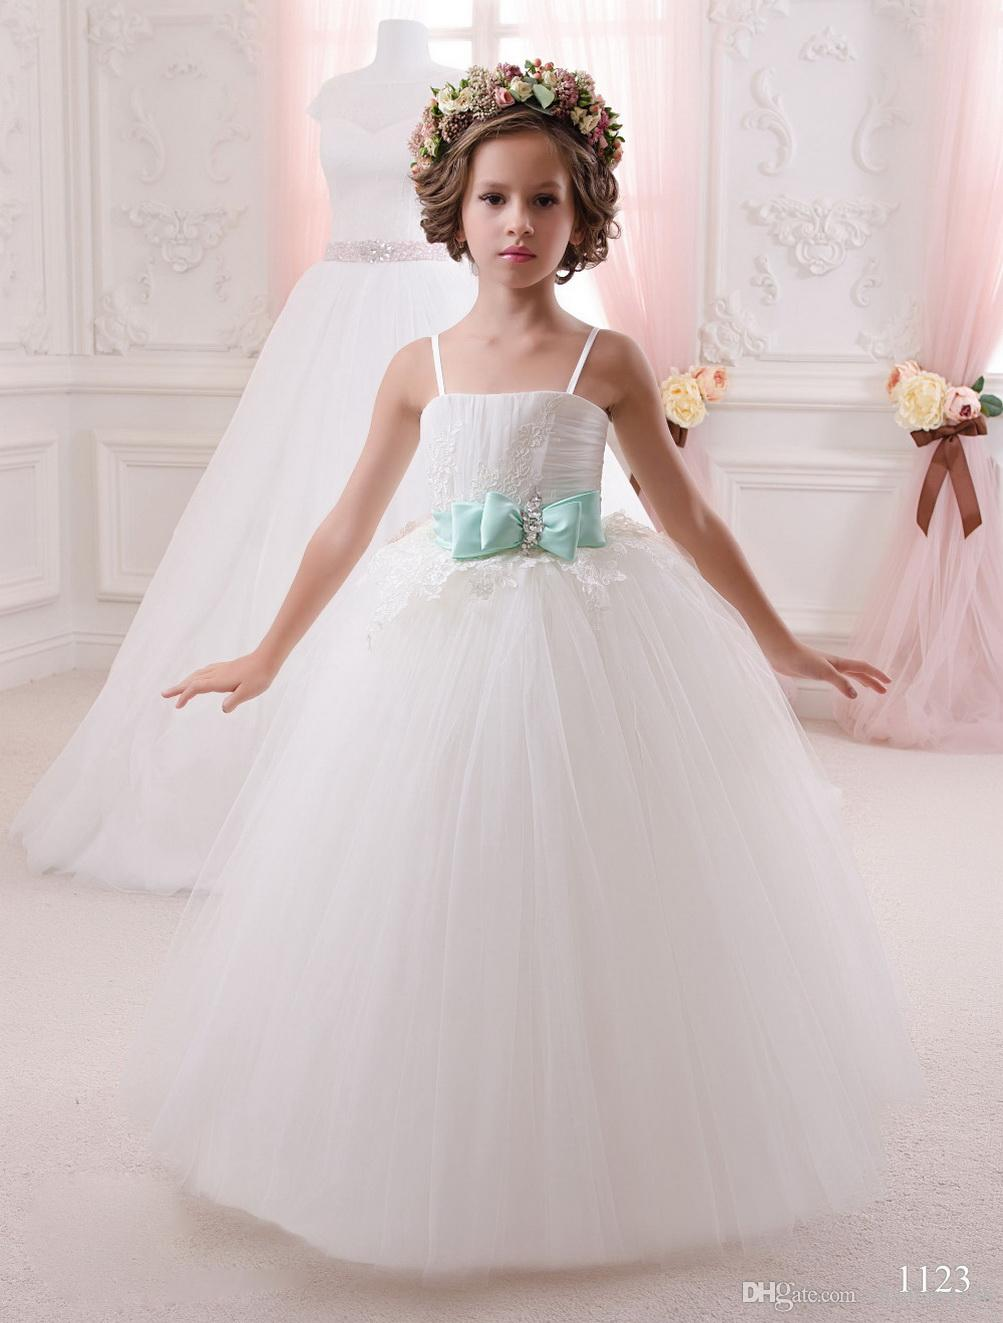 2019 Nueva Wihte Lace Beaded Flower Girl Vestidos Mint Green Bow Vestidos De Comunion Para Ninas Flower Dress